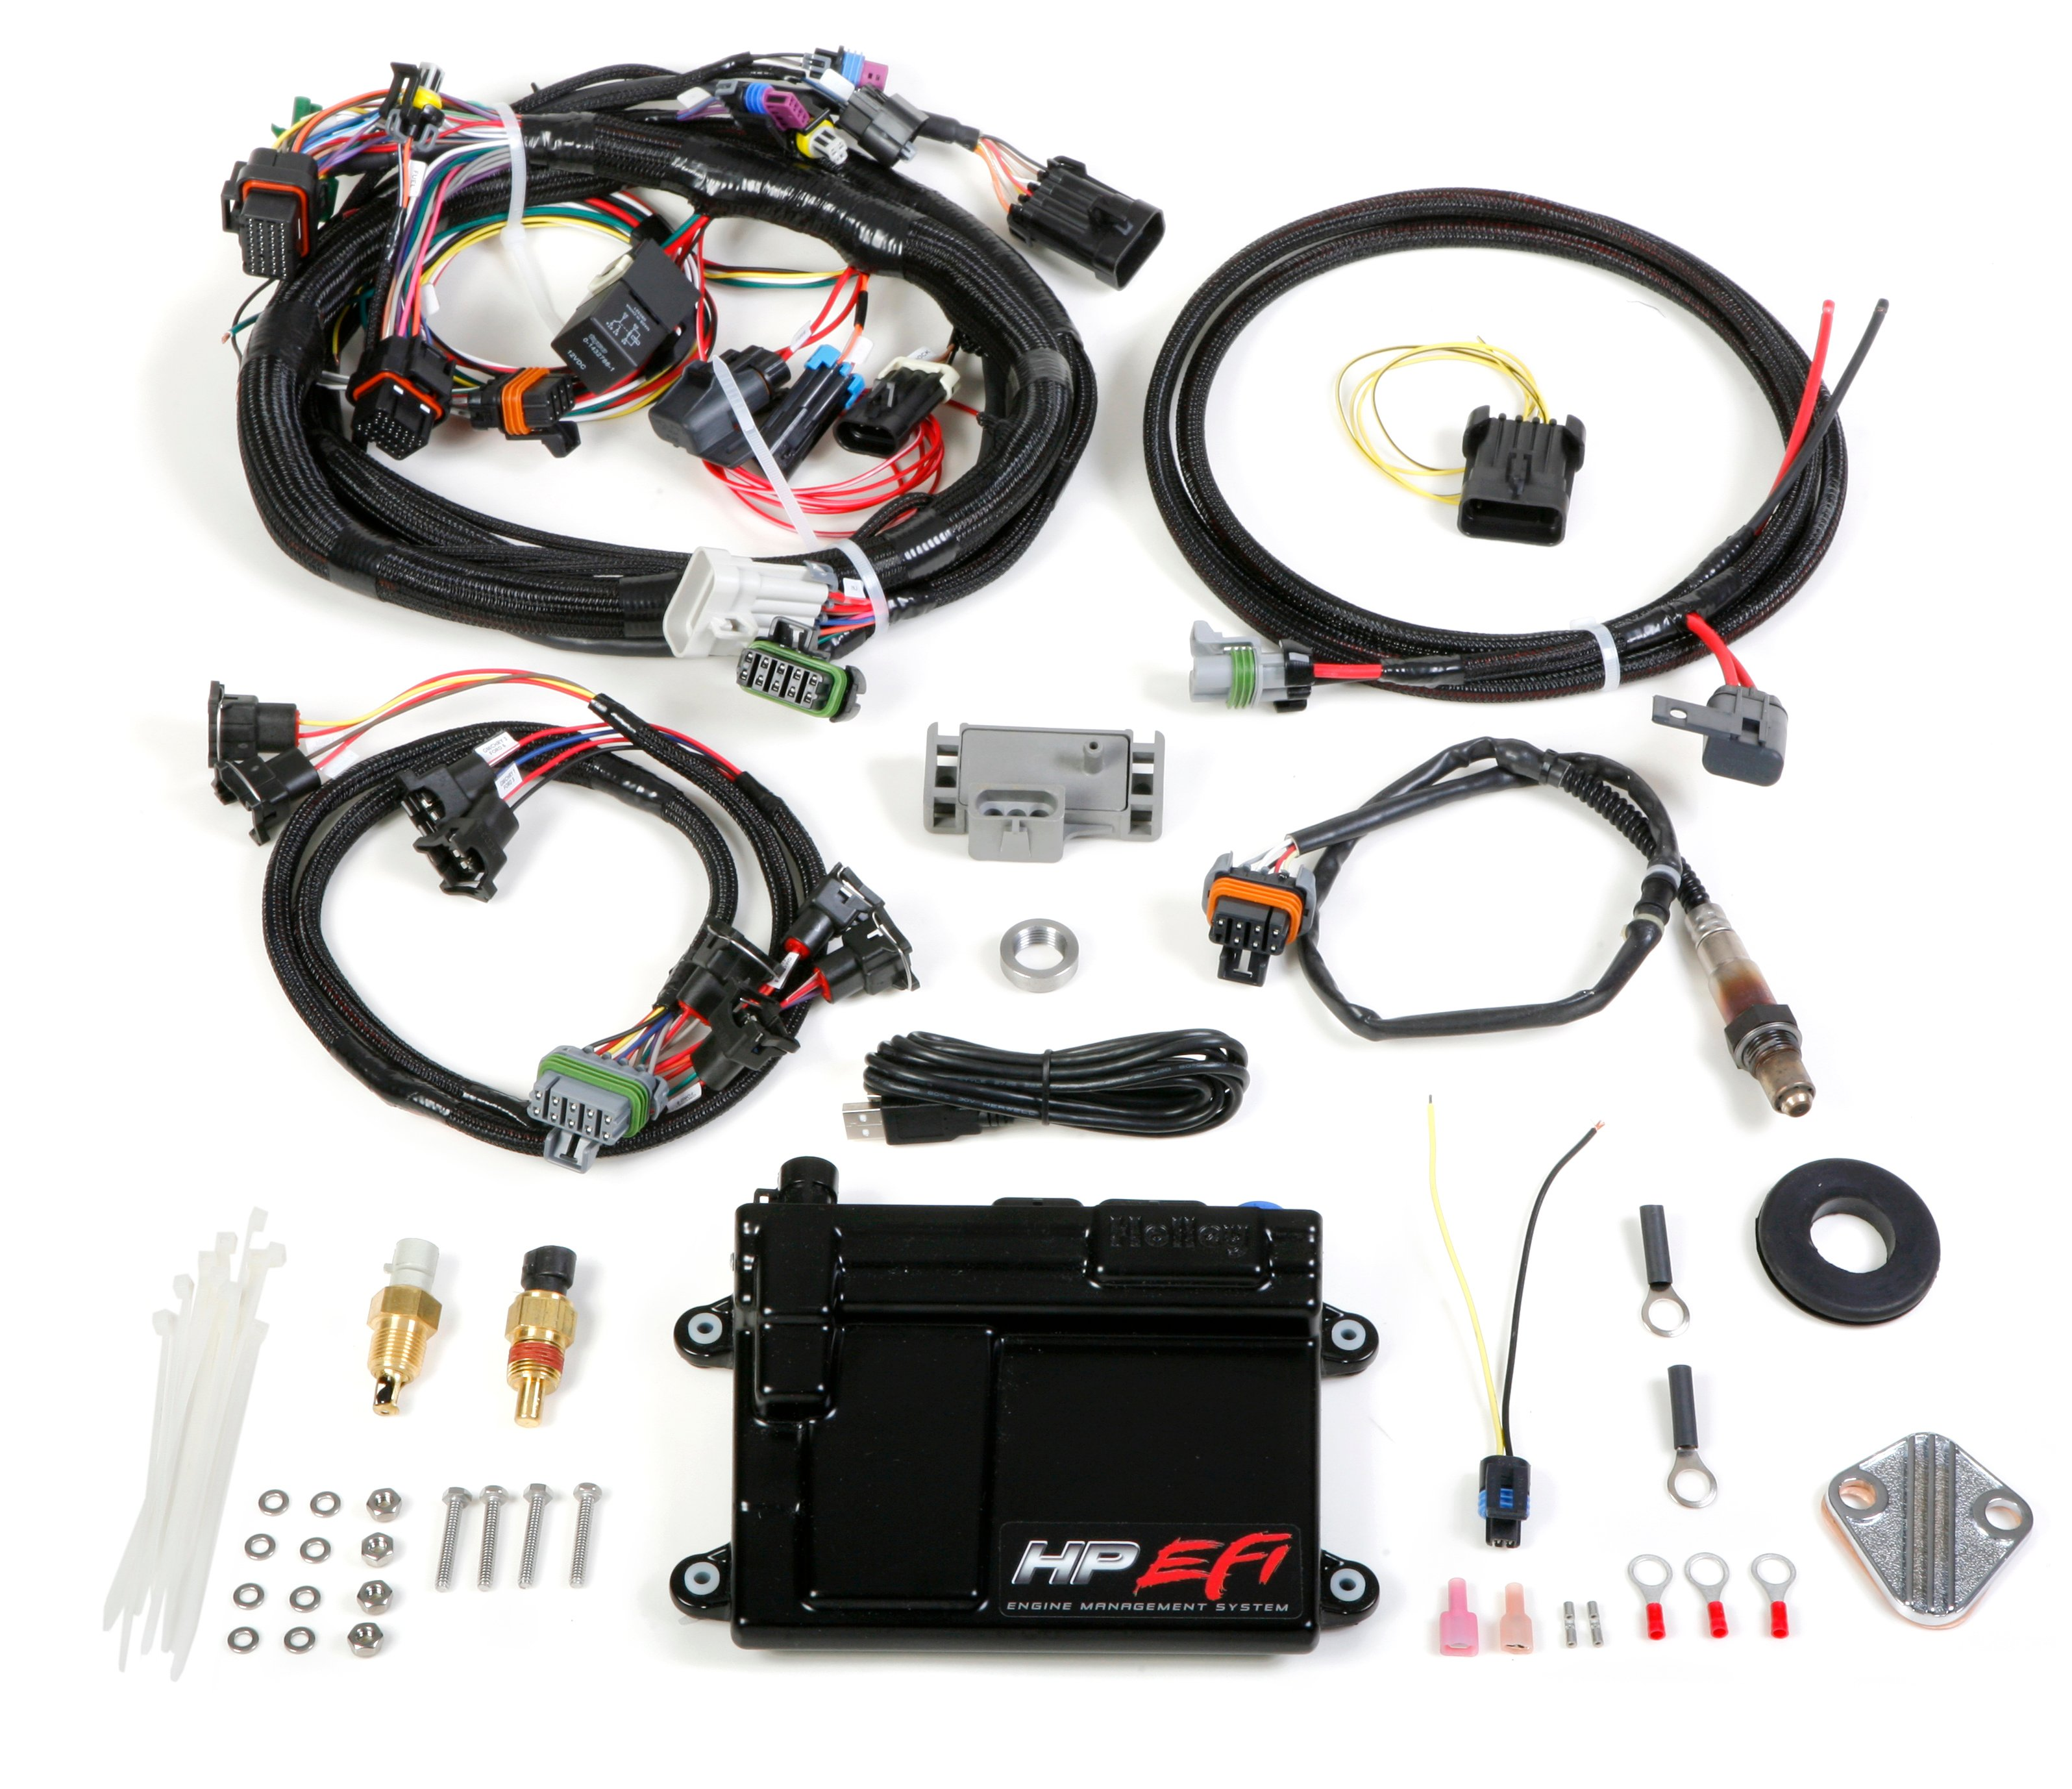 Holley Efi 550 604 Hp Ecu Harness Kits Wiring Diagram Image